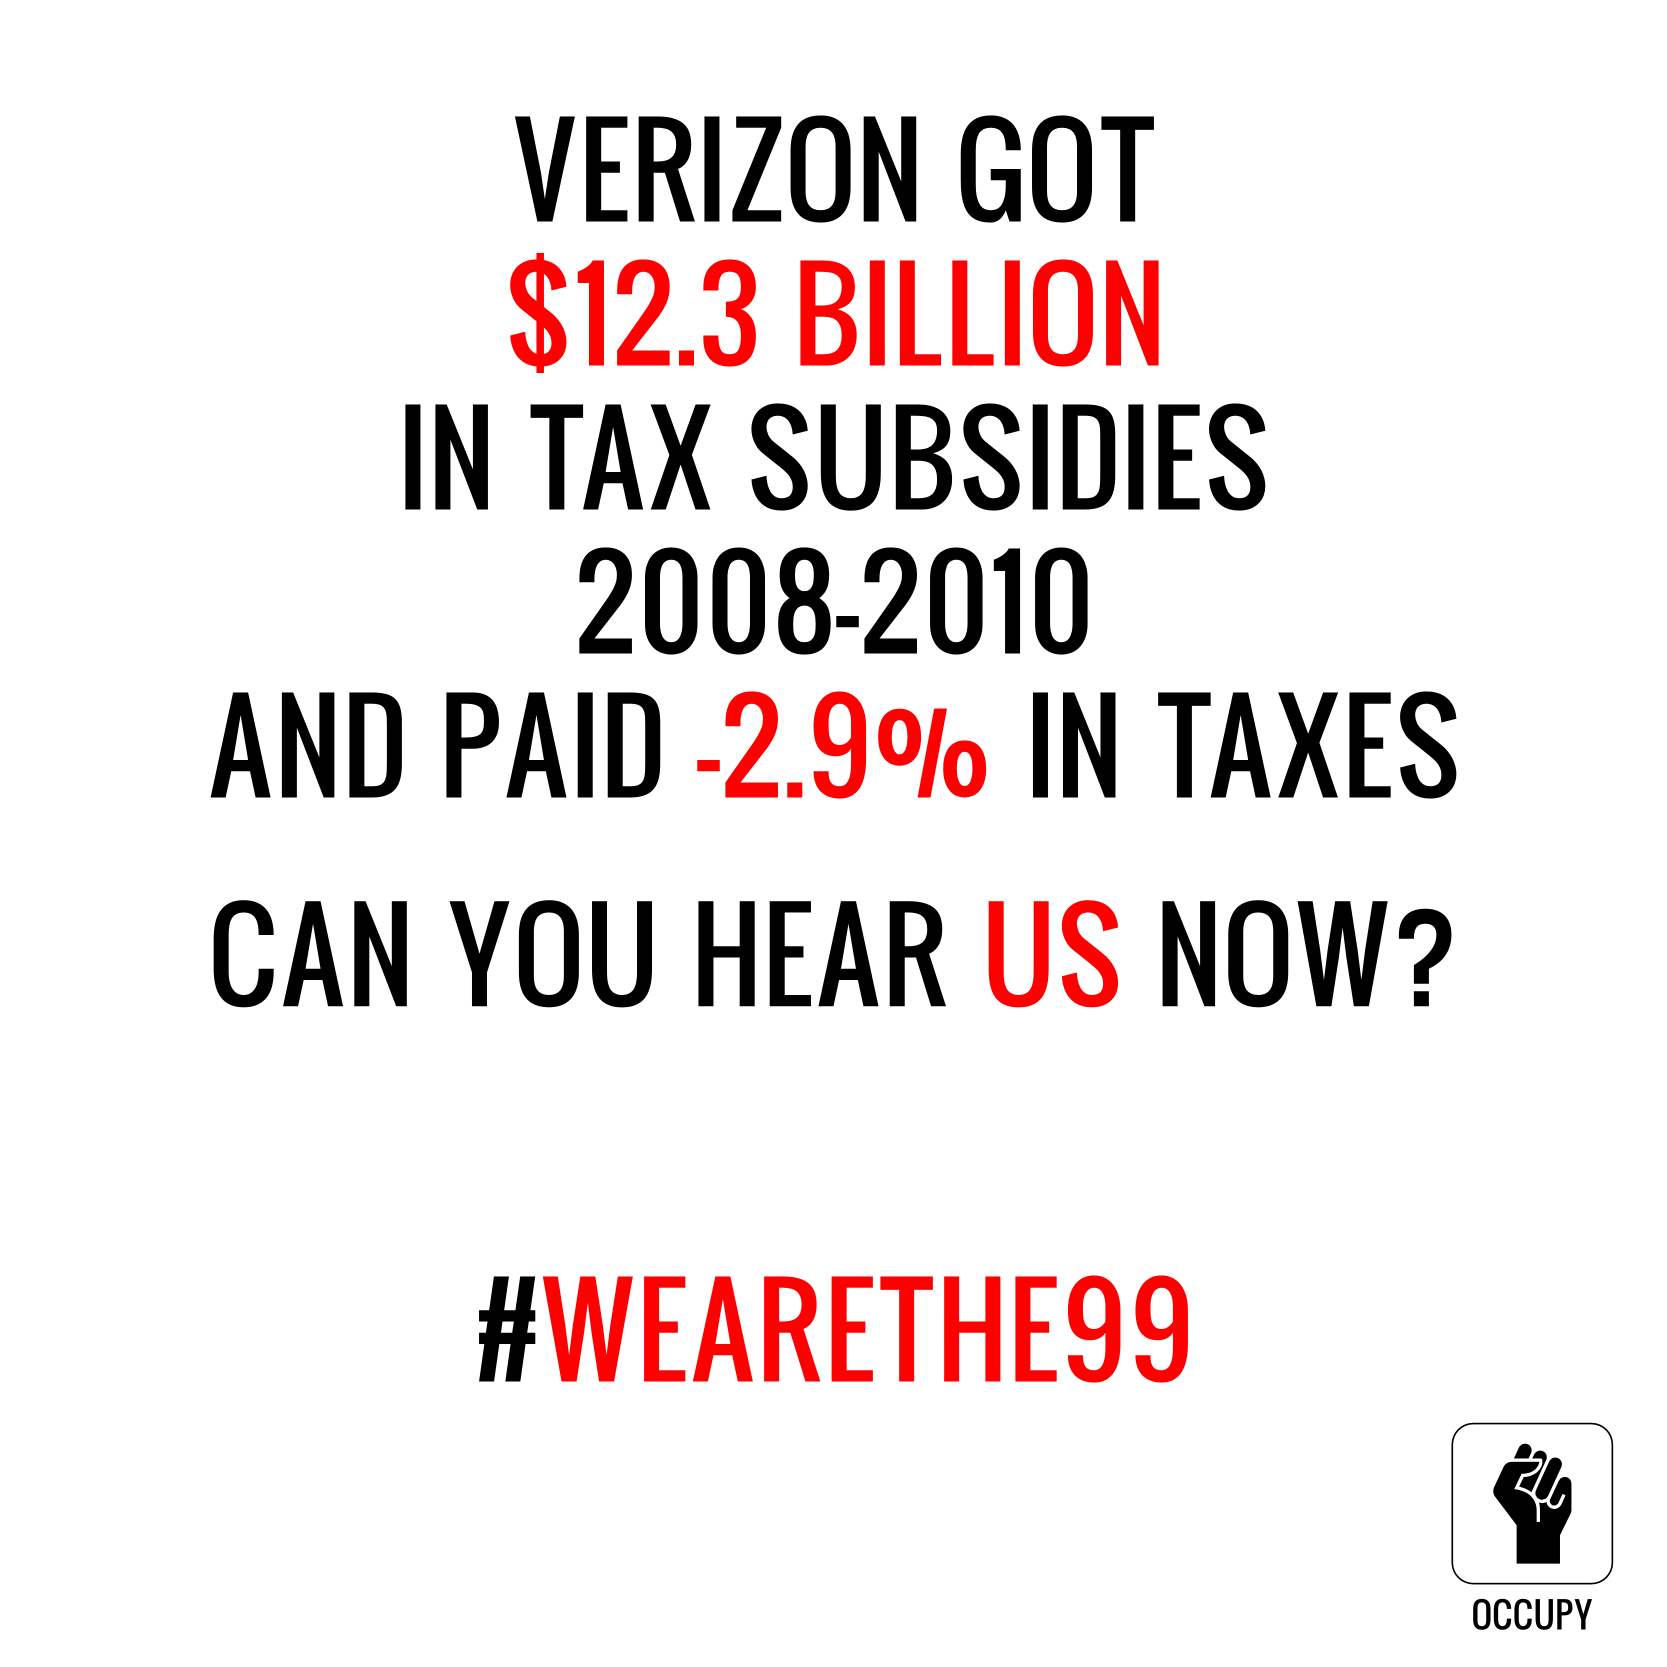 Verizon got $12.3 billion in tax subsidies from 2008 to 2010 and paid negative 2.9% in taxes. Can you hear us now? We are the 99%.